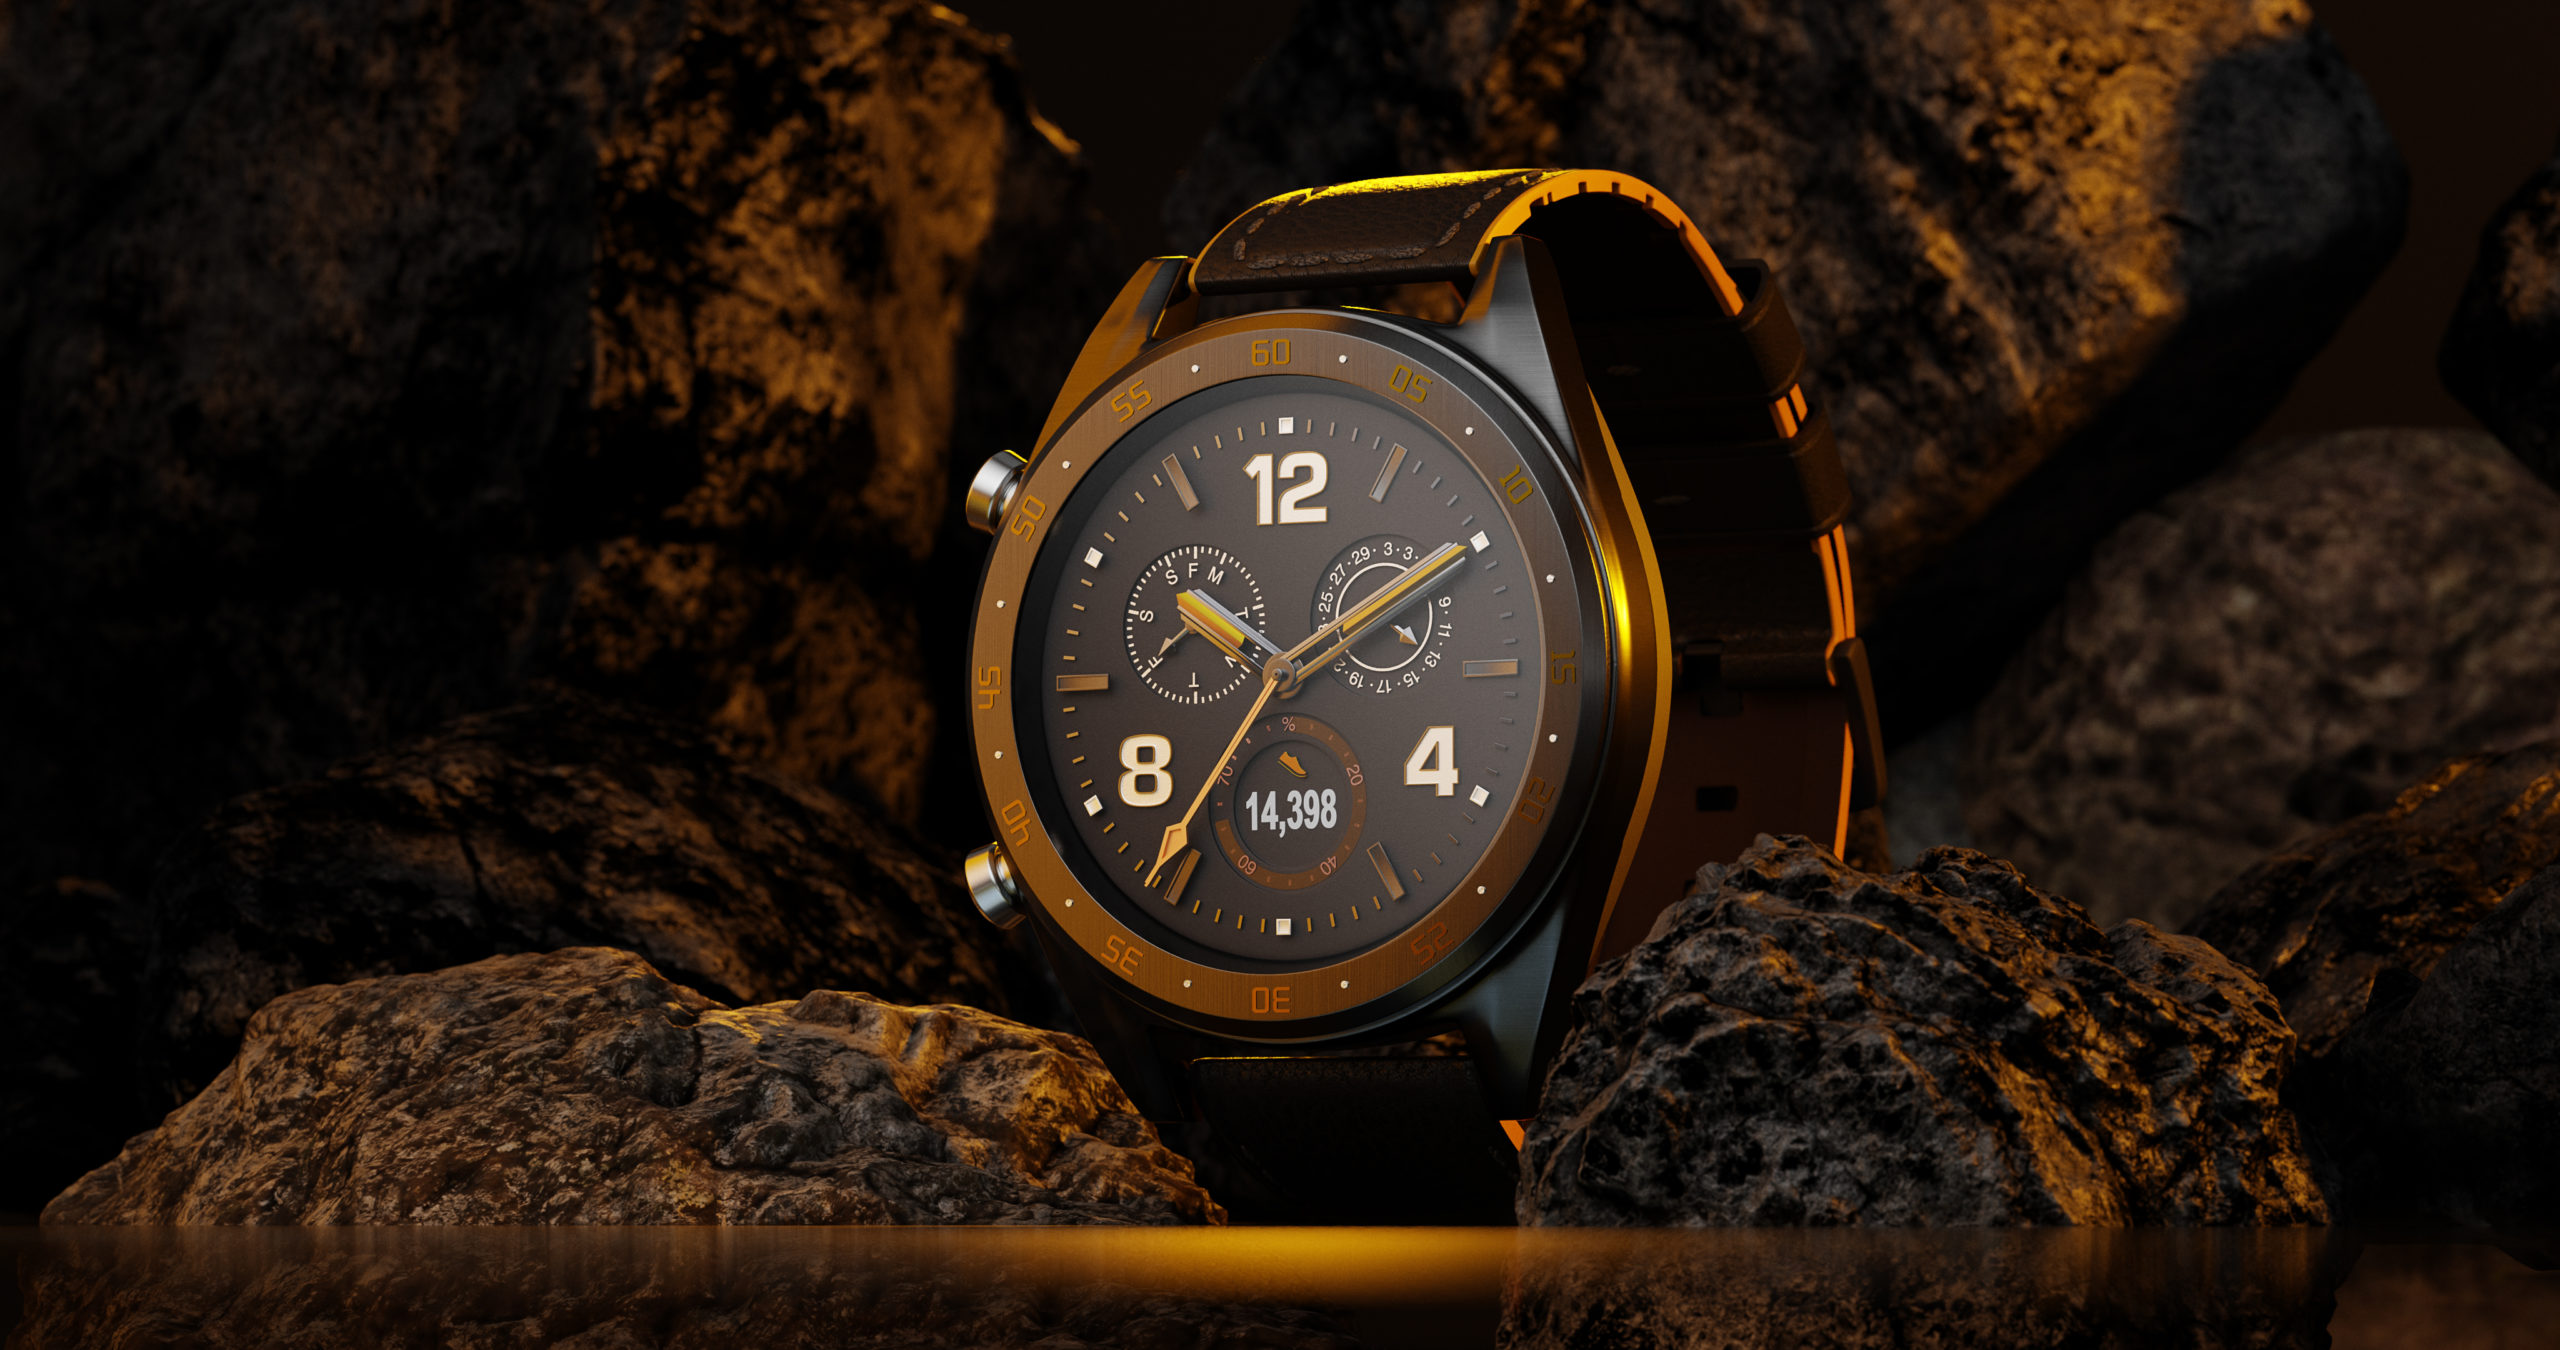 Wenbo Zhao - CGI Watch Photography-Huawei Sport Watch with stones and yellow background lighting